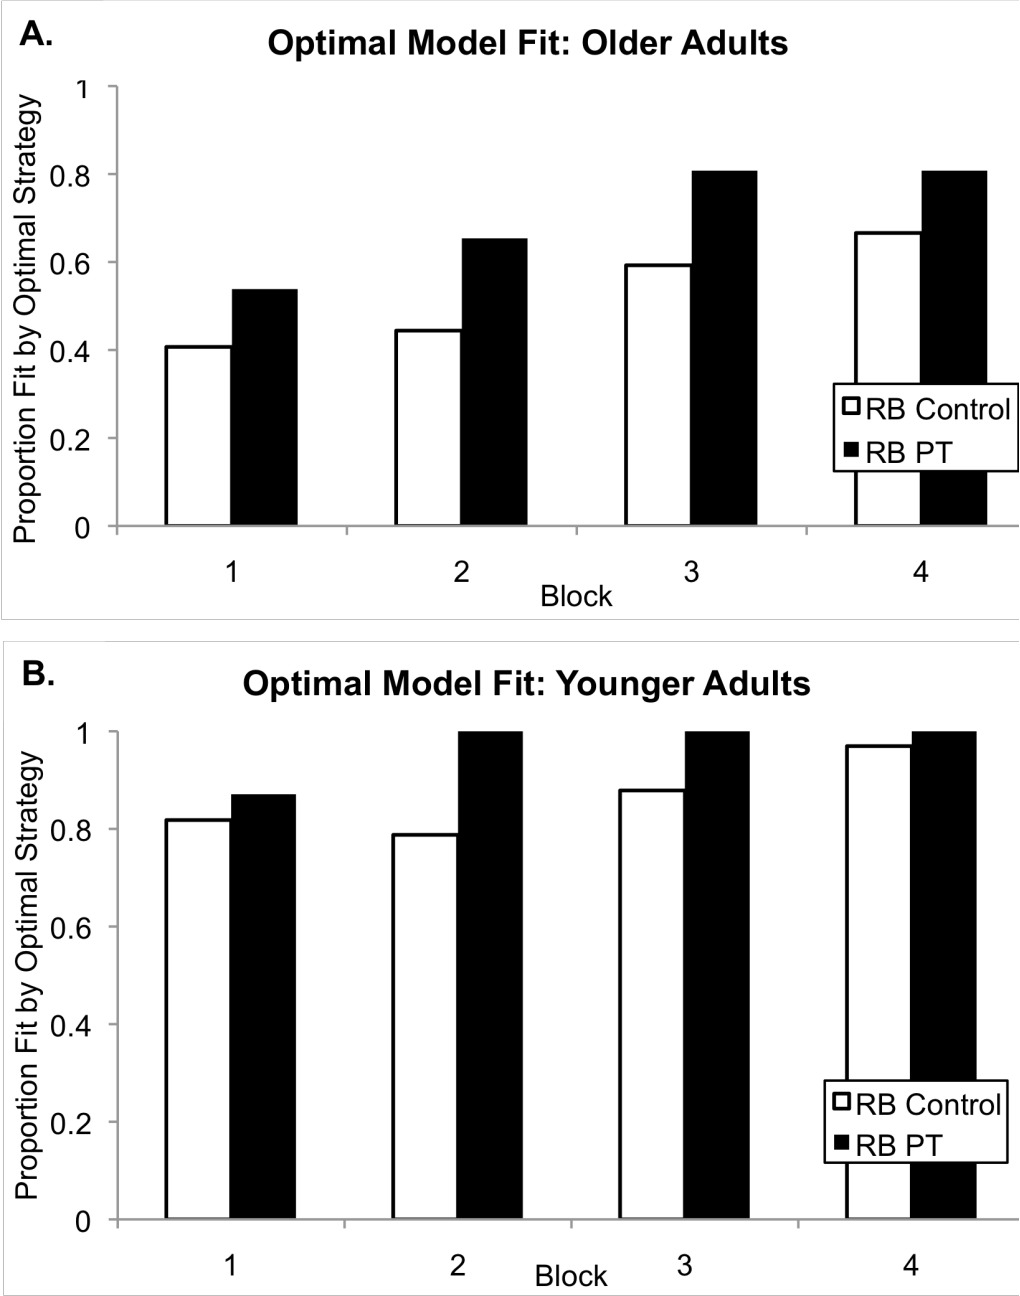 Figure 4.9: The proportion of participants, by block, whose data were fit by the optimal model. (A) shows data from older adults and (B) shows the data from younger adults.